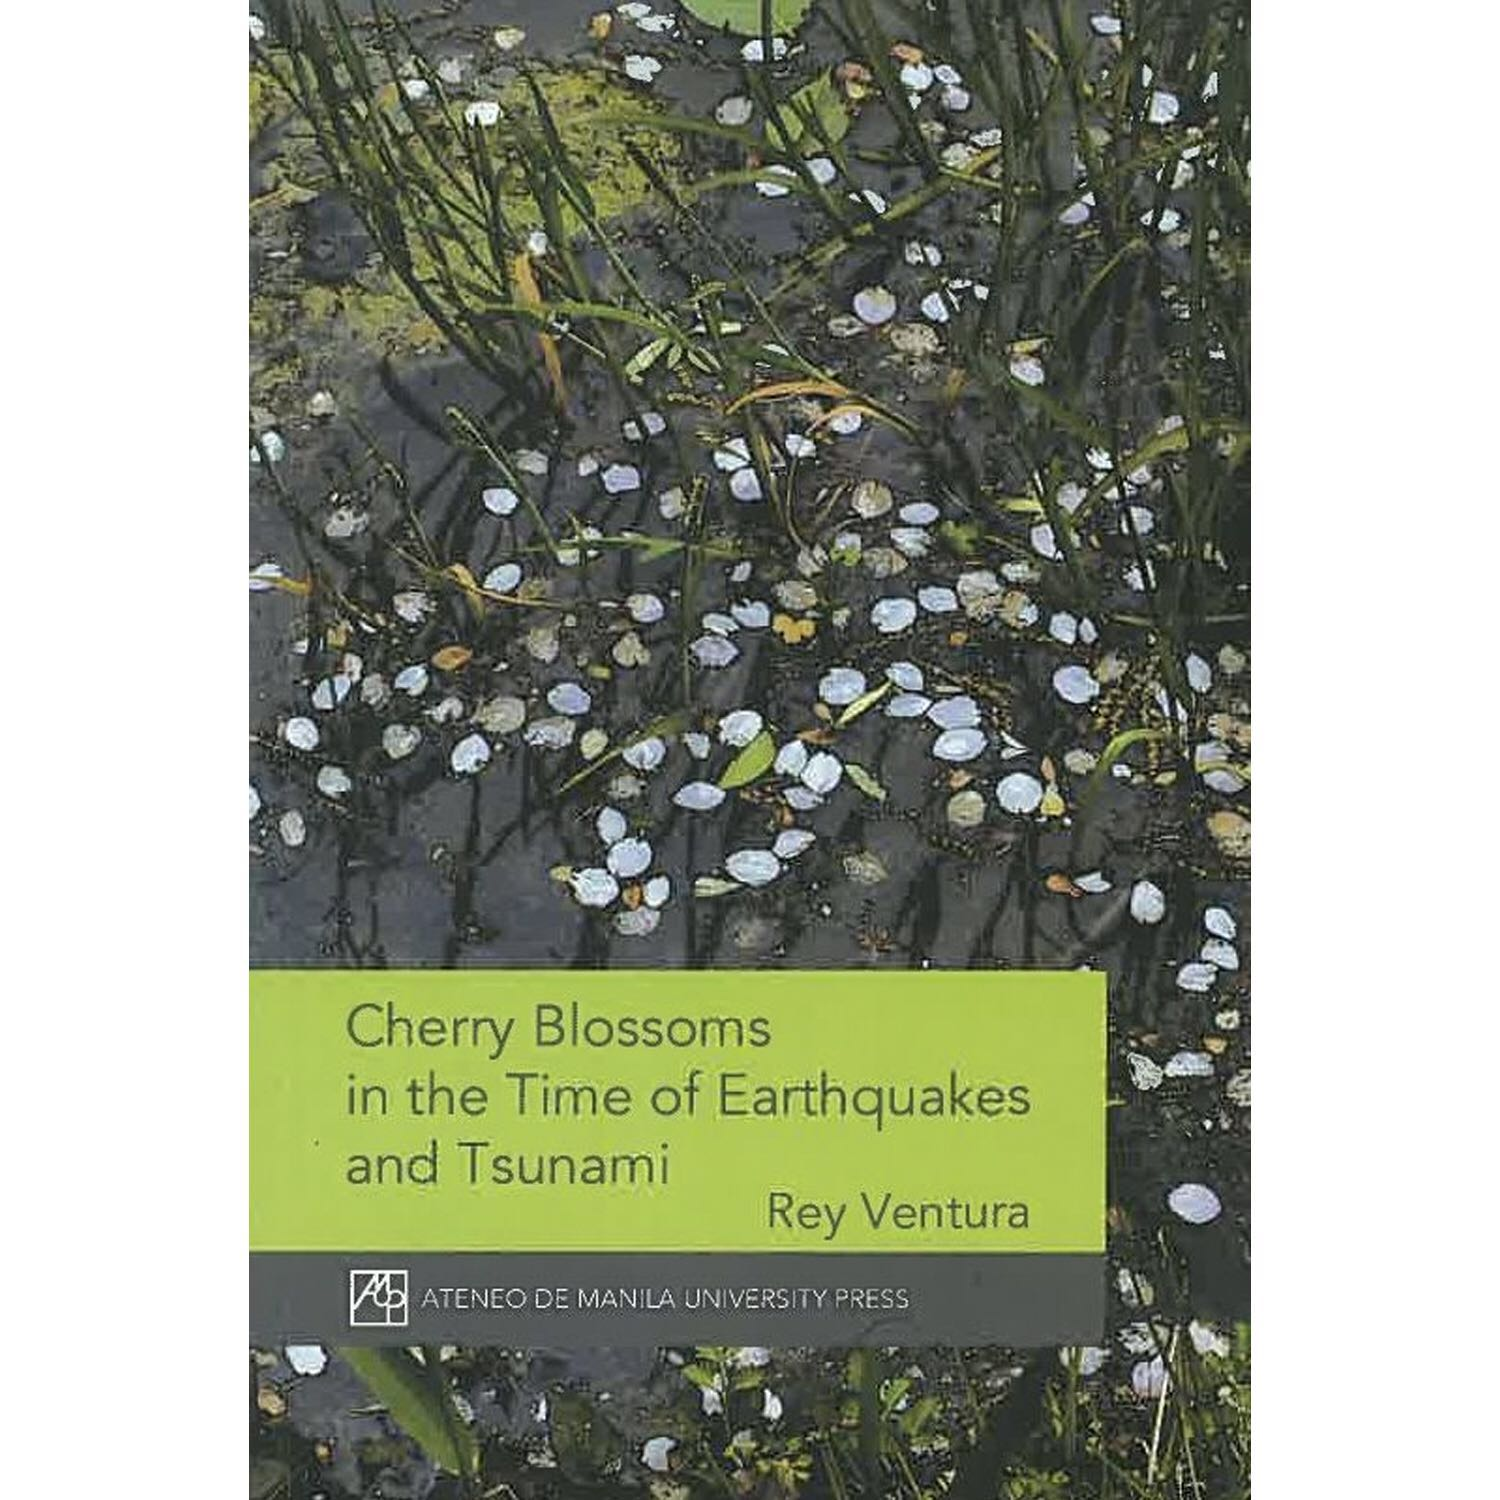 Cherry Blossoms in the Time of Earthquakes and Tsunami by